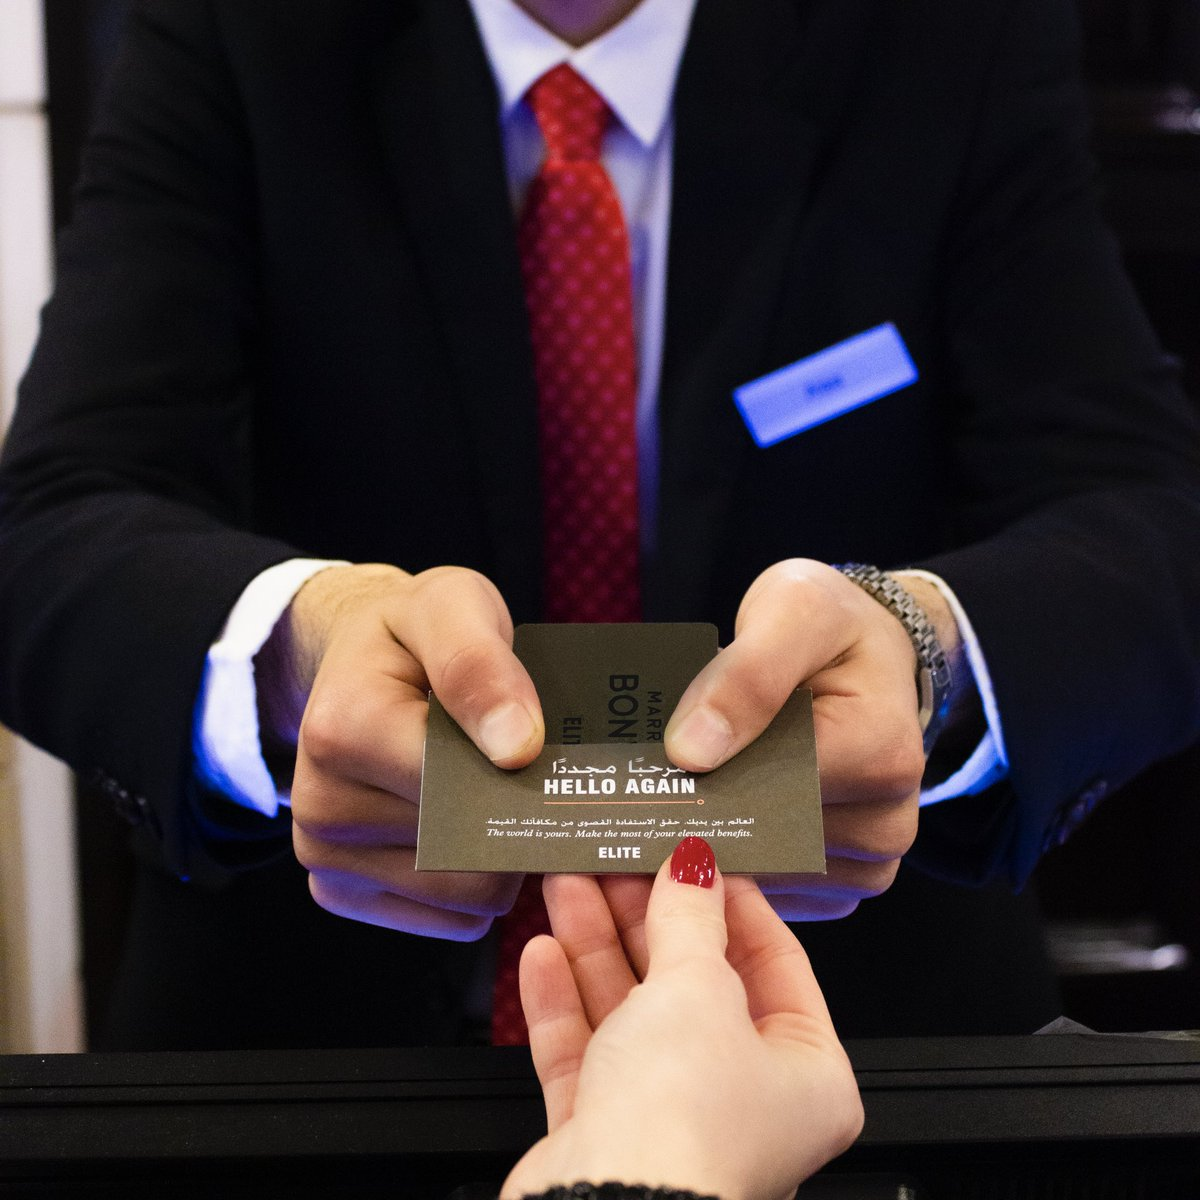 Checking in? Our Front Office team are ready to welcome you and assist with whatever you need! https://t.co/SnovT6zXi7